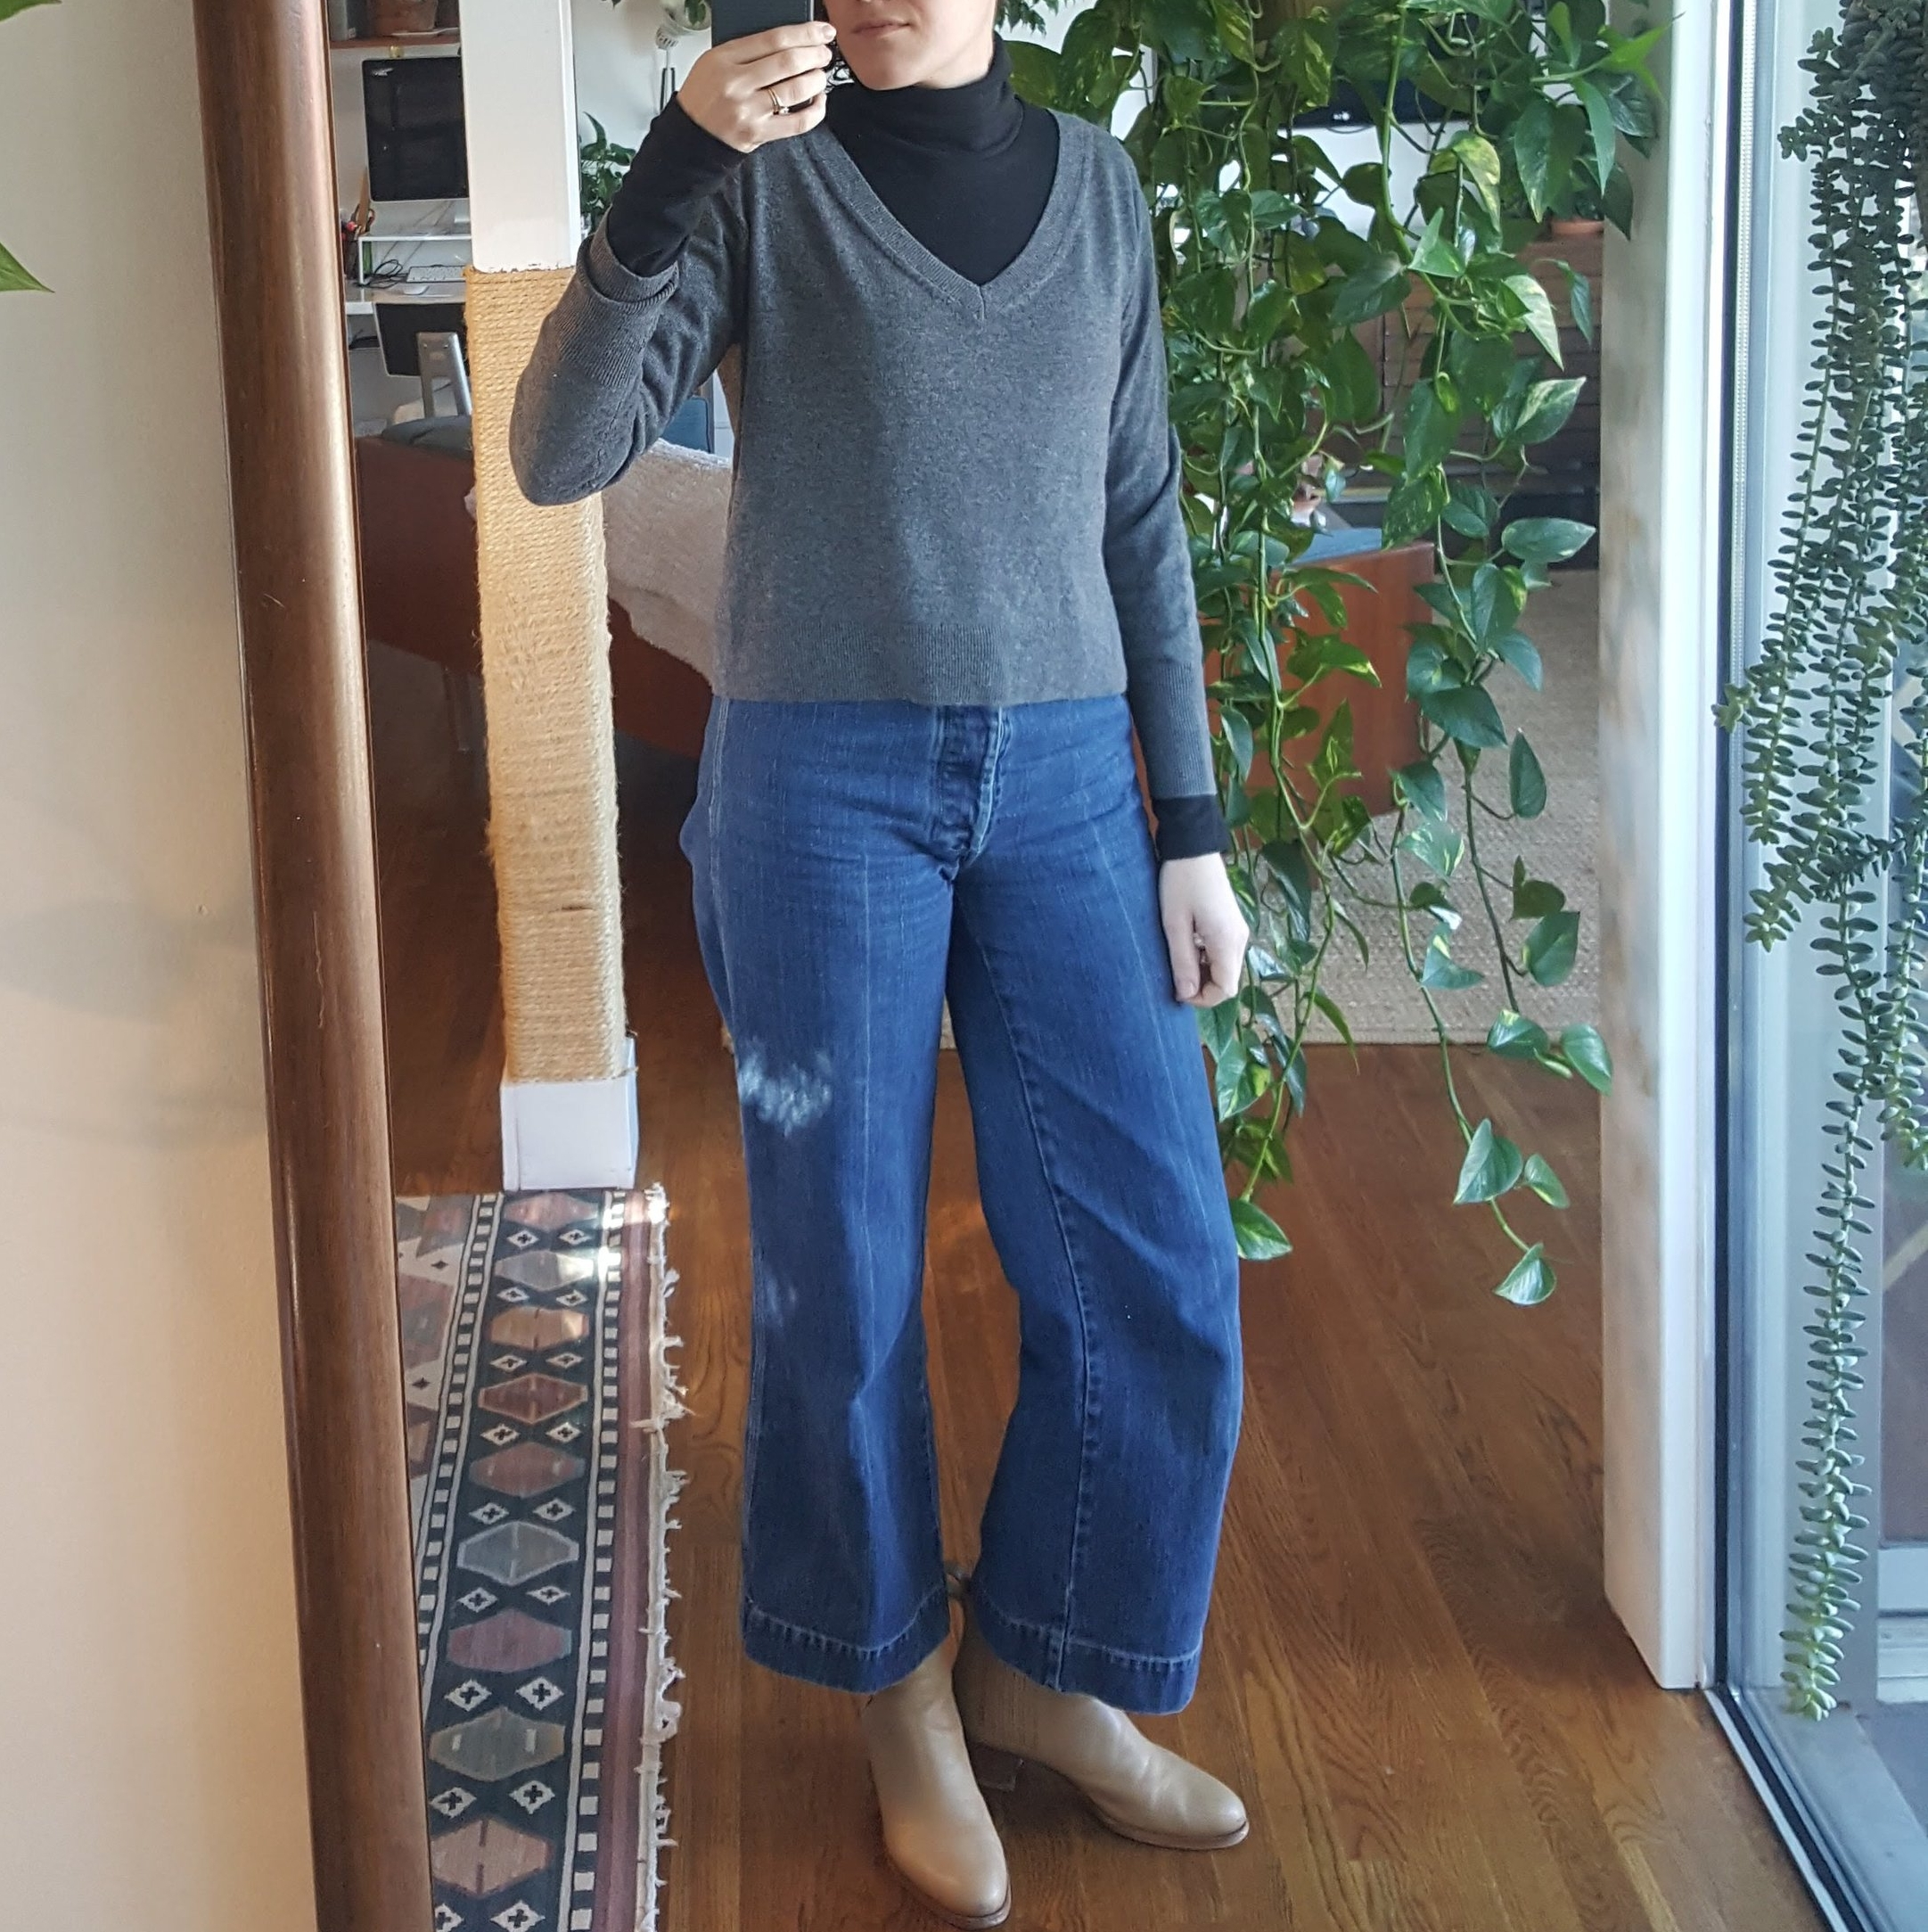 Thursday - January 4, 2018CC stewarts with an Everlane sweater over the Kotn turtleneck. It's a lotta look, but I don't hate it? This is my last day of vacation and I spend it doing more errands I can only do on a day off, meeting a contractor who will give us a quote on remodeling some areas of the condo, then baking this butternut squash lasagne before heading to a studio member's meeting. I've been good so far this year and stuck to my two-day a week workout plan. :-) It's what I did before for a year and a half so I know I can do it.